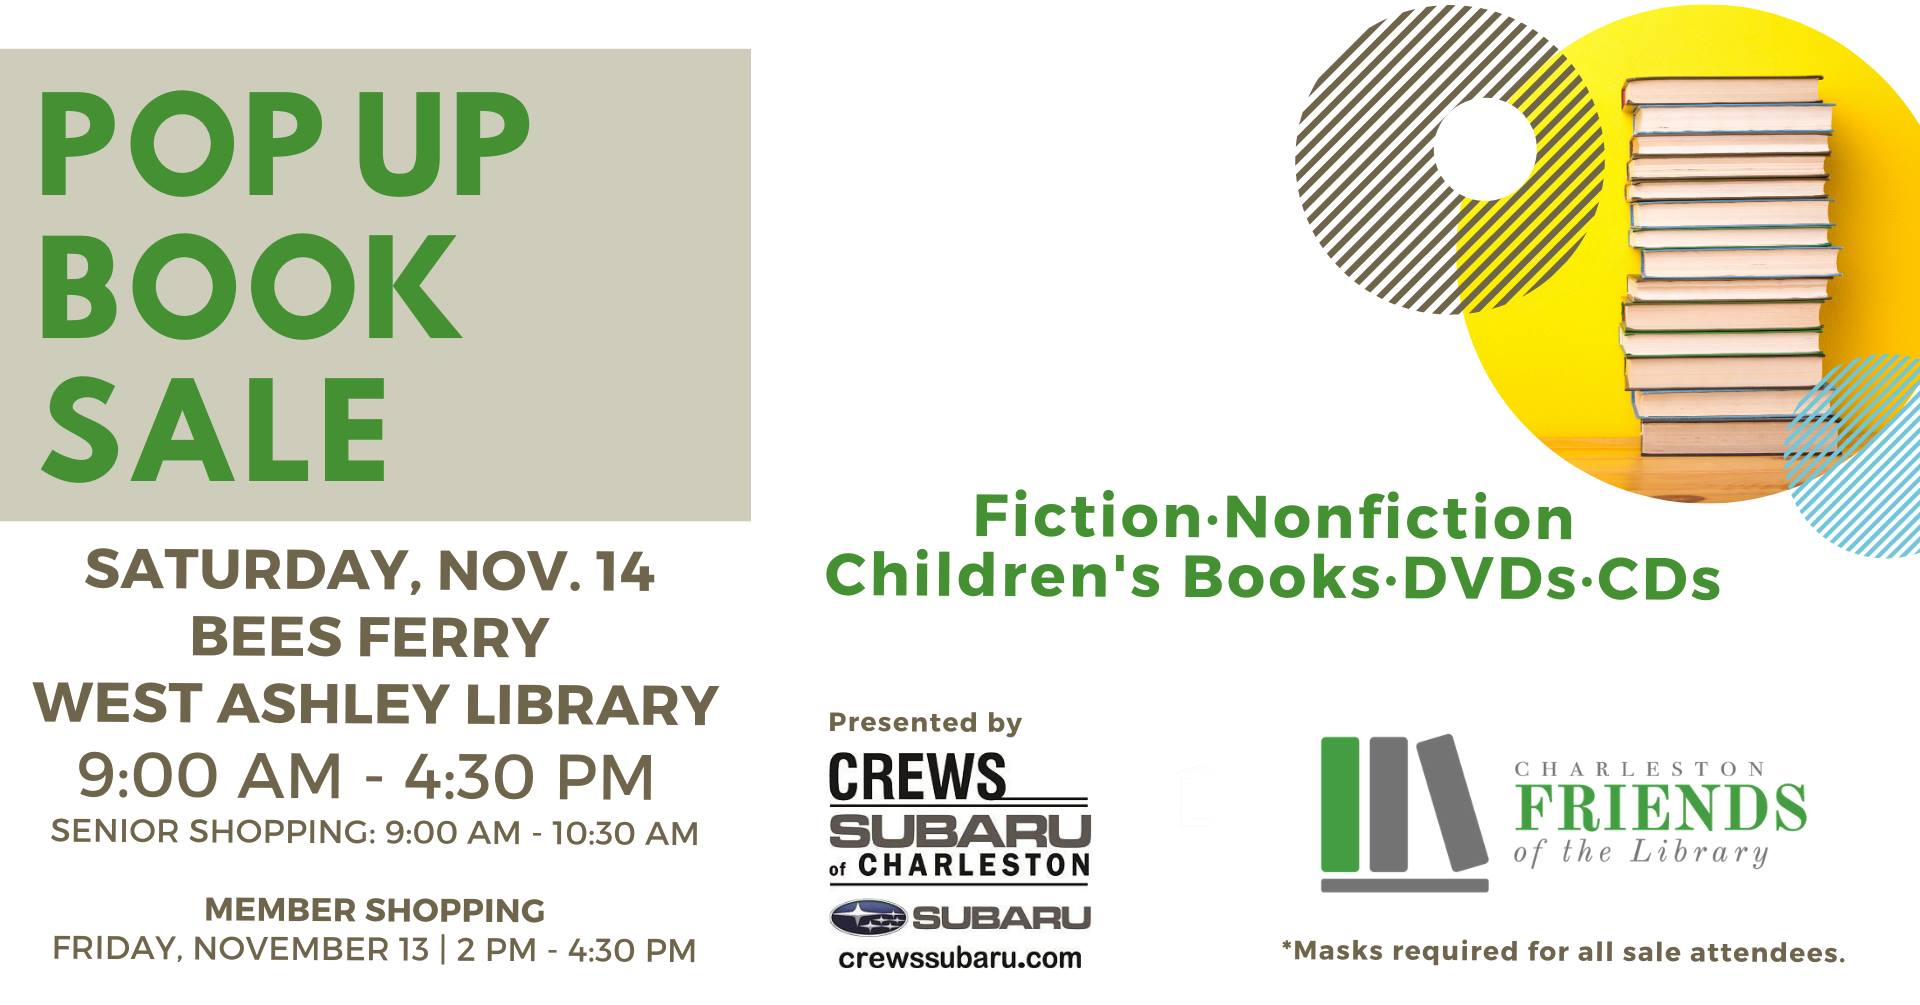 Support Charleston Friends of the Library on November 14th at a Pop-Up Book Sale